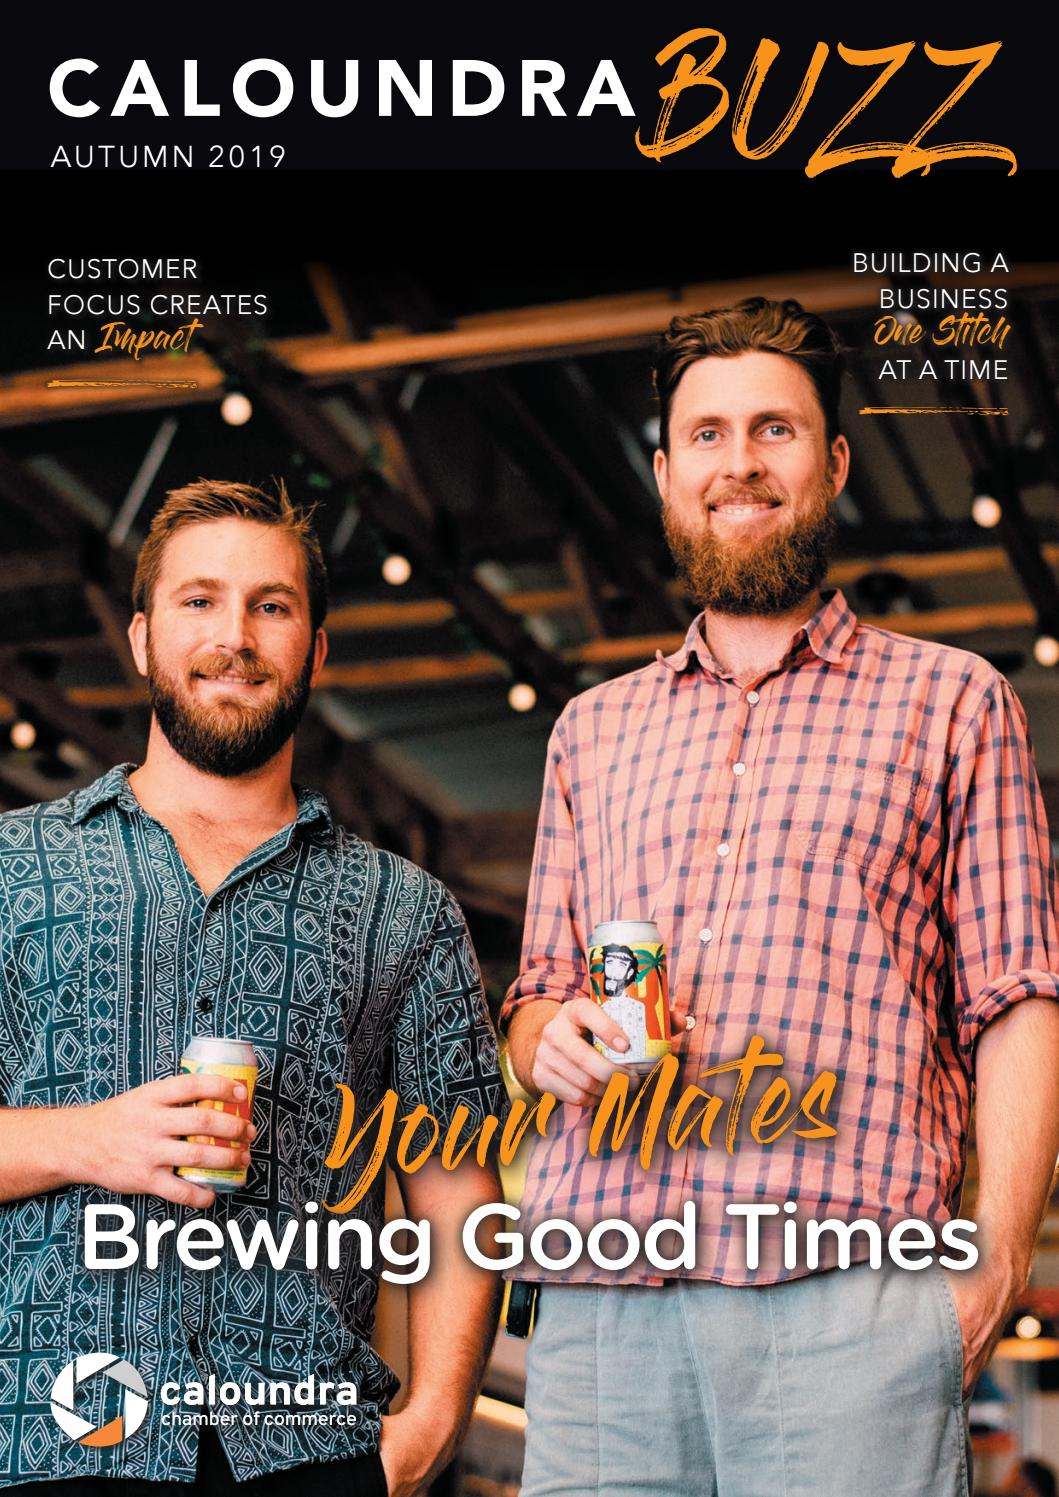 Caloundra Buzz Autumn 2019 By Caloundra Chamber Of Commerce Issuu